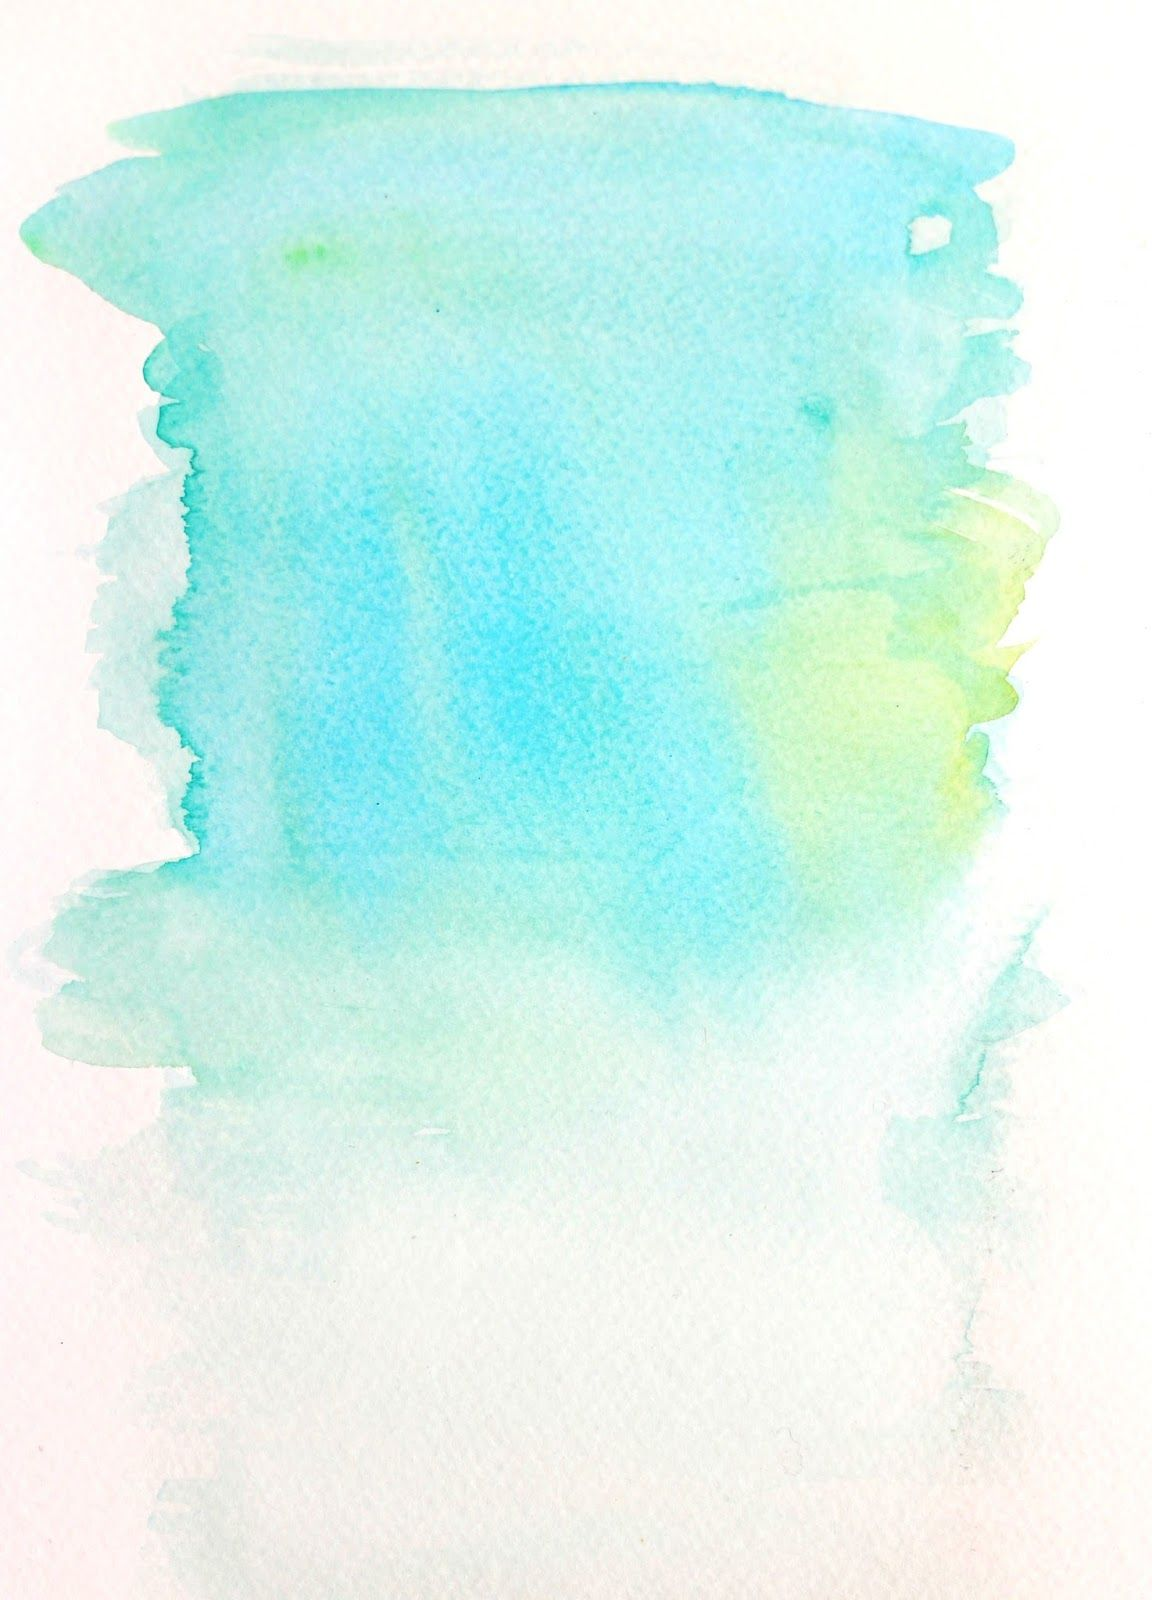 Watercolor clipart in picmonkey clipart images gallery for.